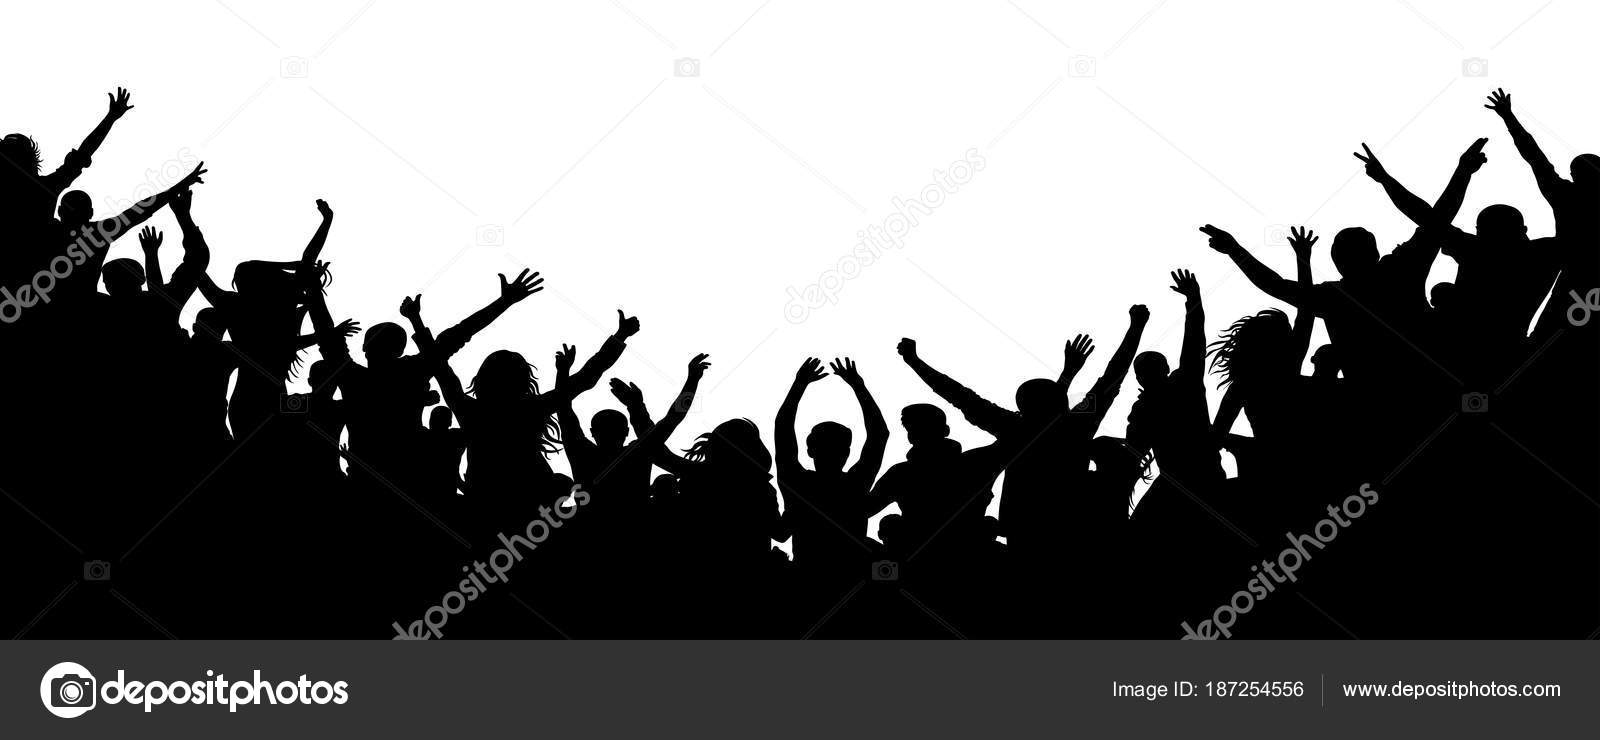 cheerful people crowd applauding silhouette party applause fans rh depositphotos com crown vector clipart crown vector free download